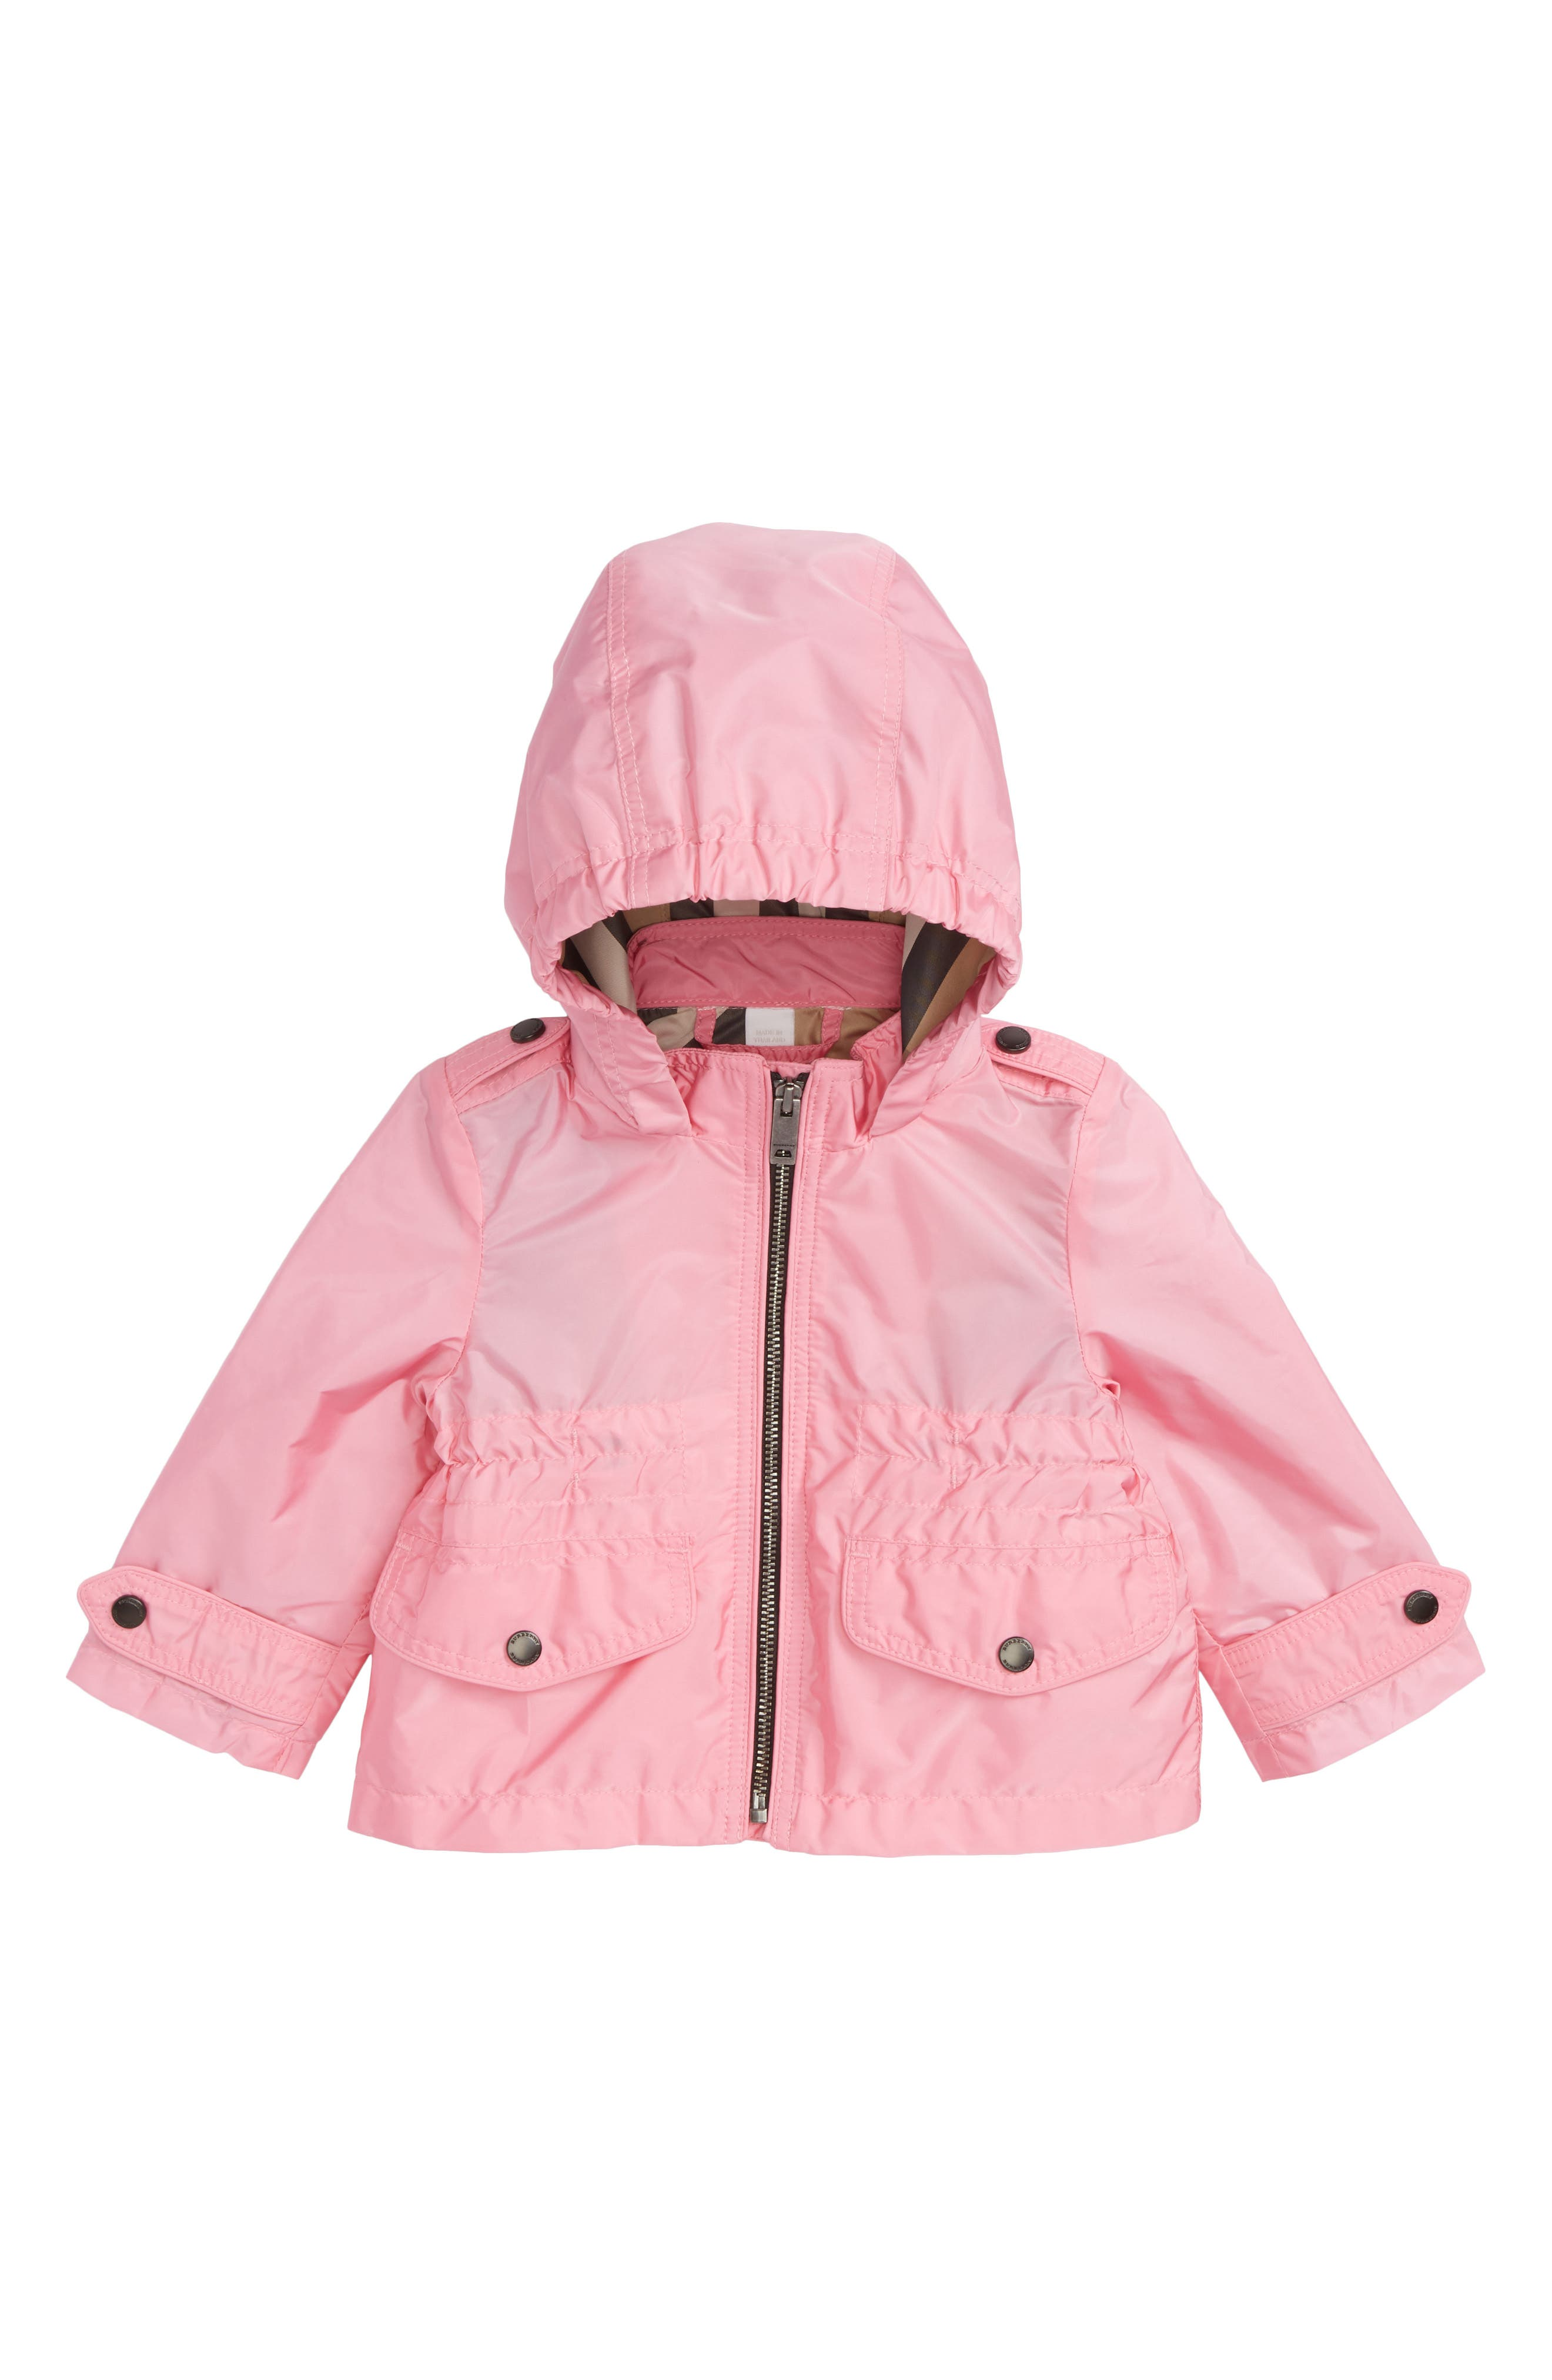 Mini Halle Hooded Packaway Rain Jacket,                             Main thumbnail 1, color,                             Bright Coral Pink